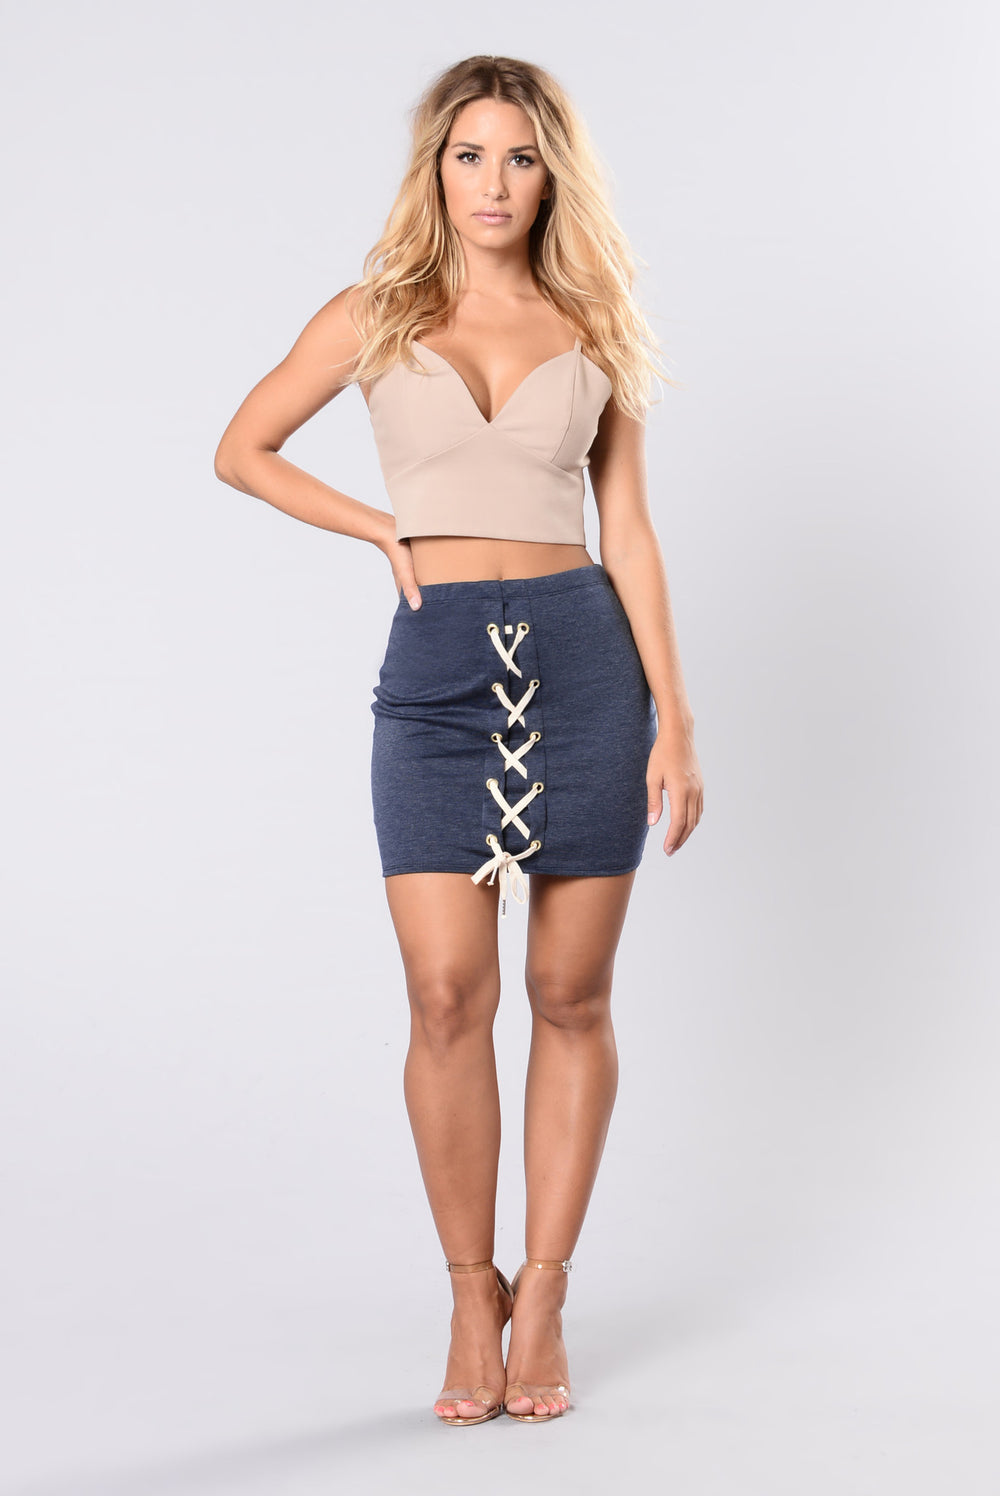 Where I Went Wrong Skirt - Denim Blue